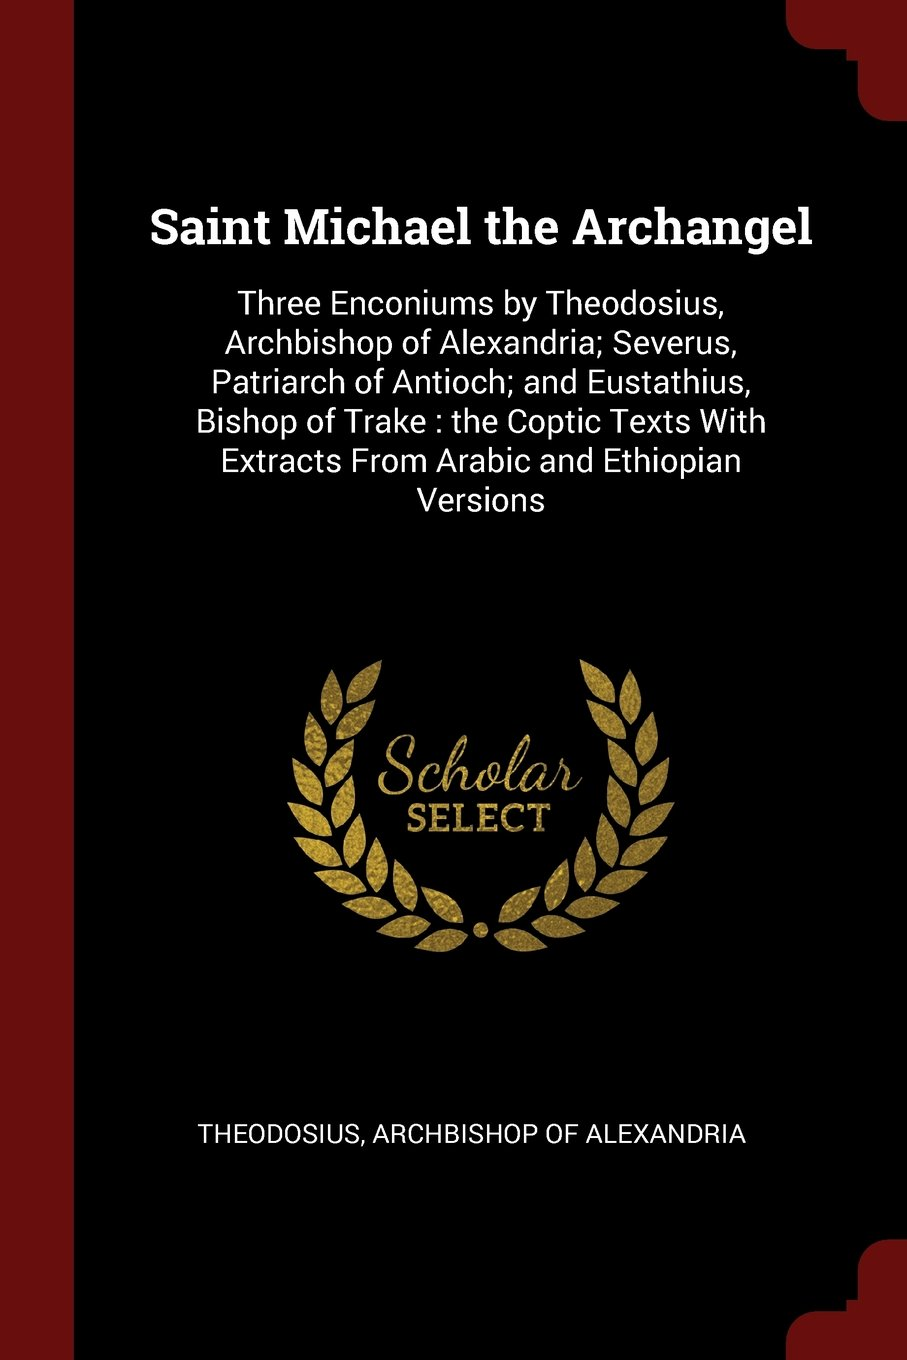 Saint Michael the Archangel: Three Enconiums by Theodosius, Archbishop of Alexandria; Severus, Patriarch of Antioch; and Eustathius, Bishop of Trake : ... Extracts From Arabic and Ethiopian Versions ebook